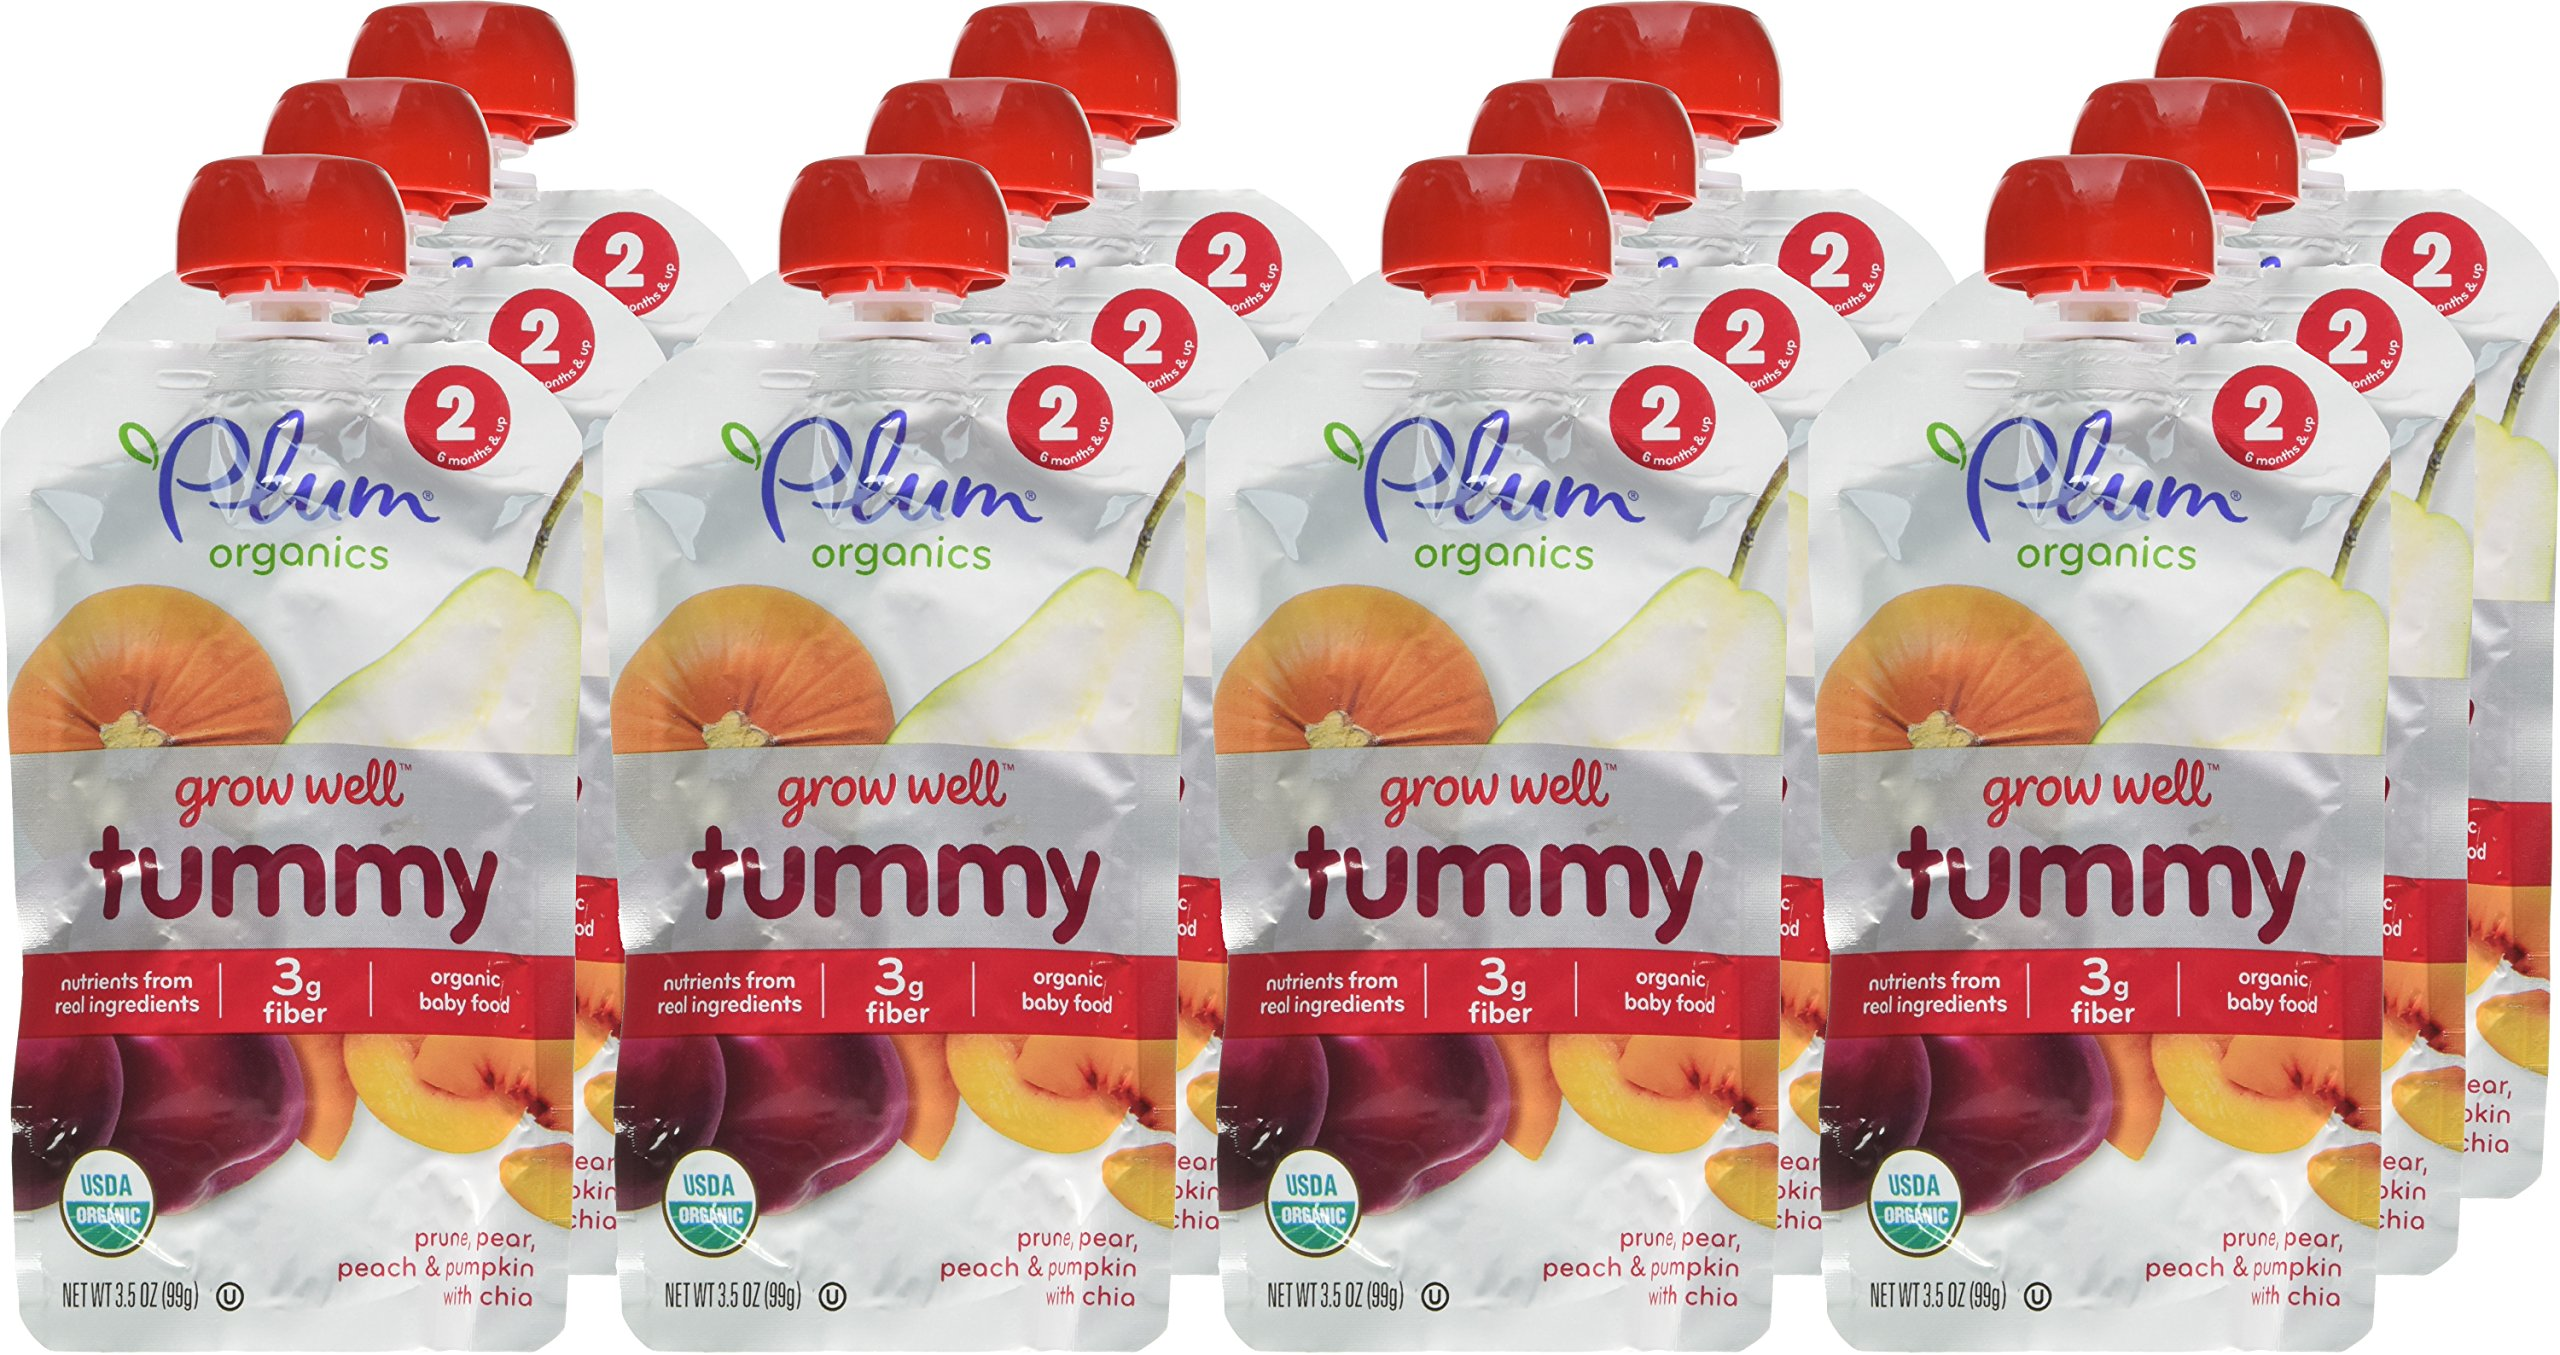 Plum Organics Baby Grow Well Food, Prune/Pear/Peach/Pumpkin with Chia Puree, 3.5 Ounce (Pack of 12) by Plum Organics (Image #2)